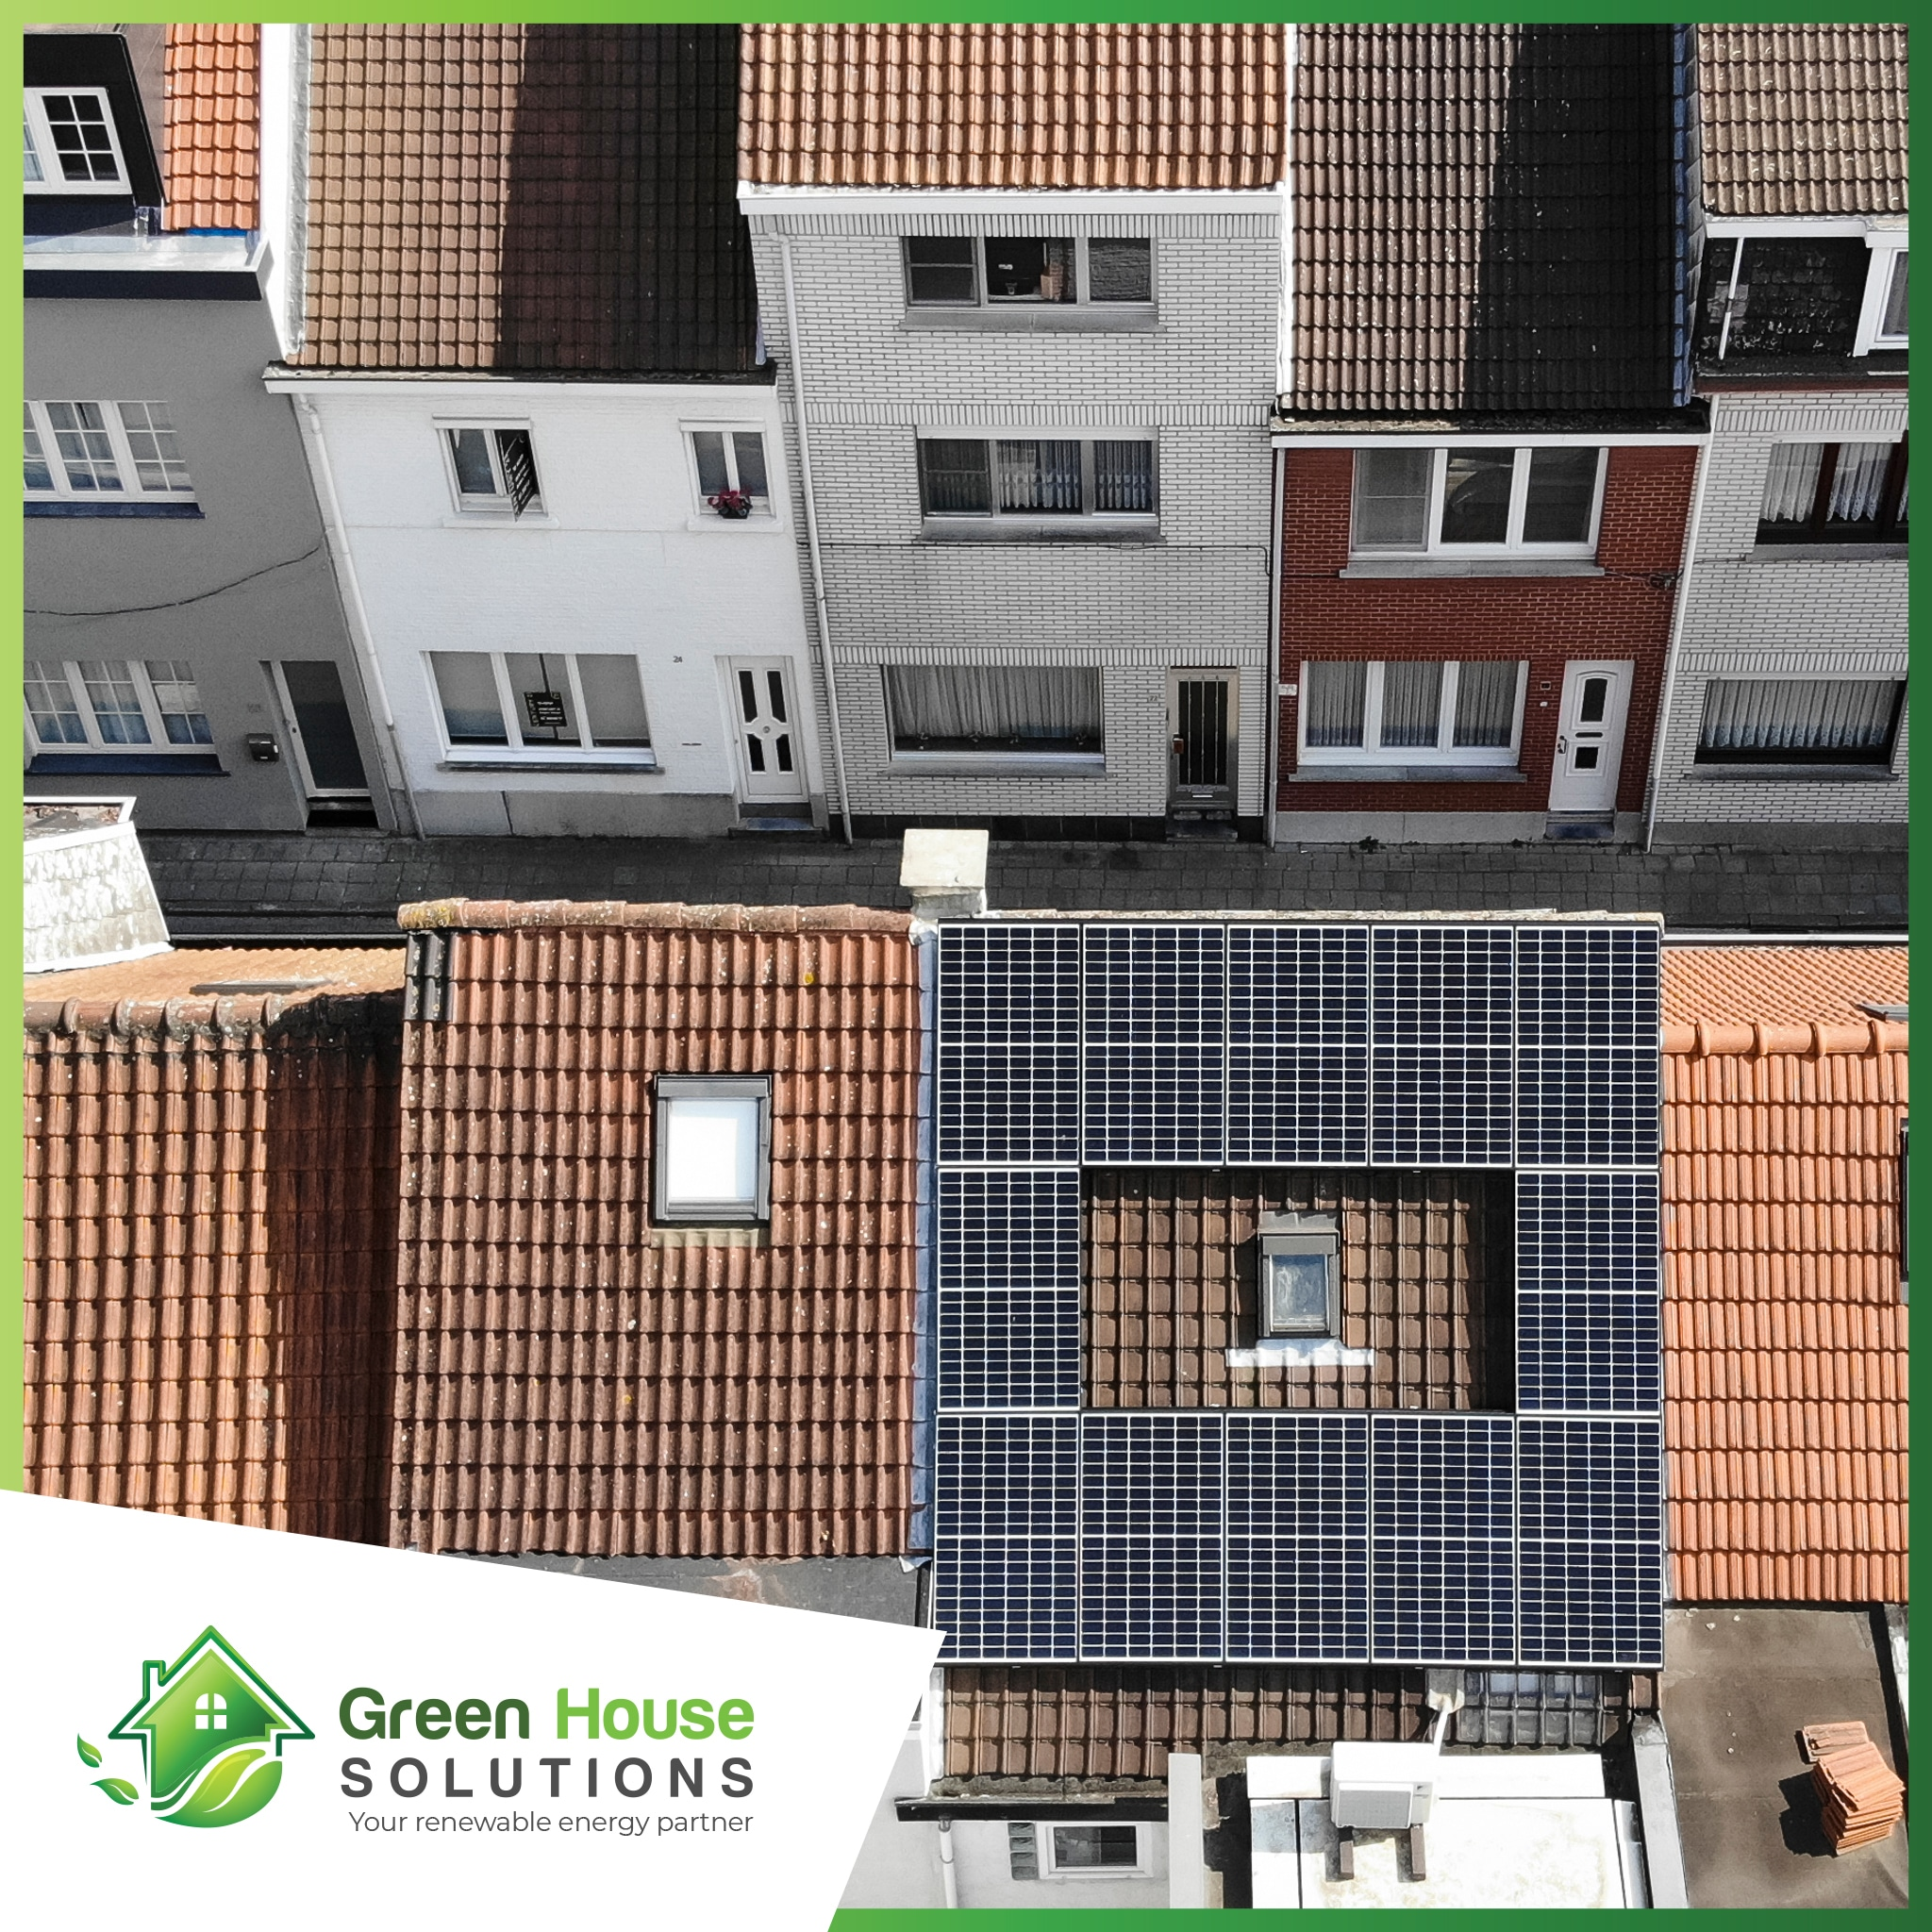 Green House Solutions 2048x2048 Social Media Template 0000052